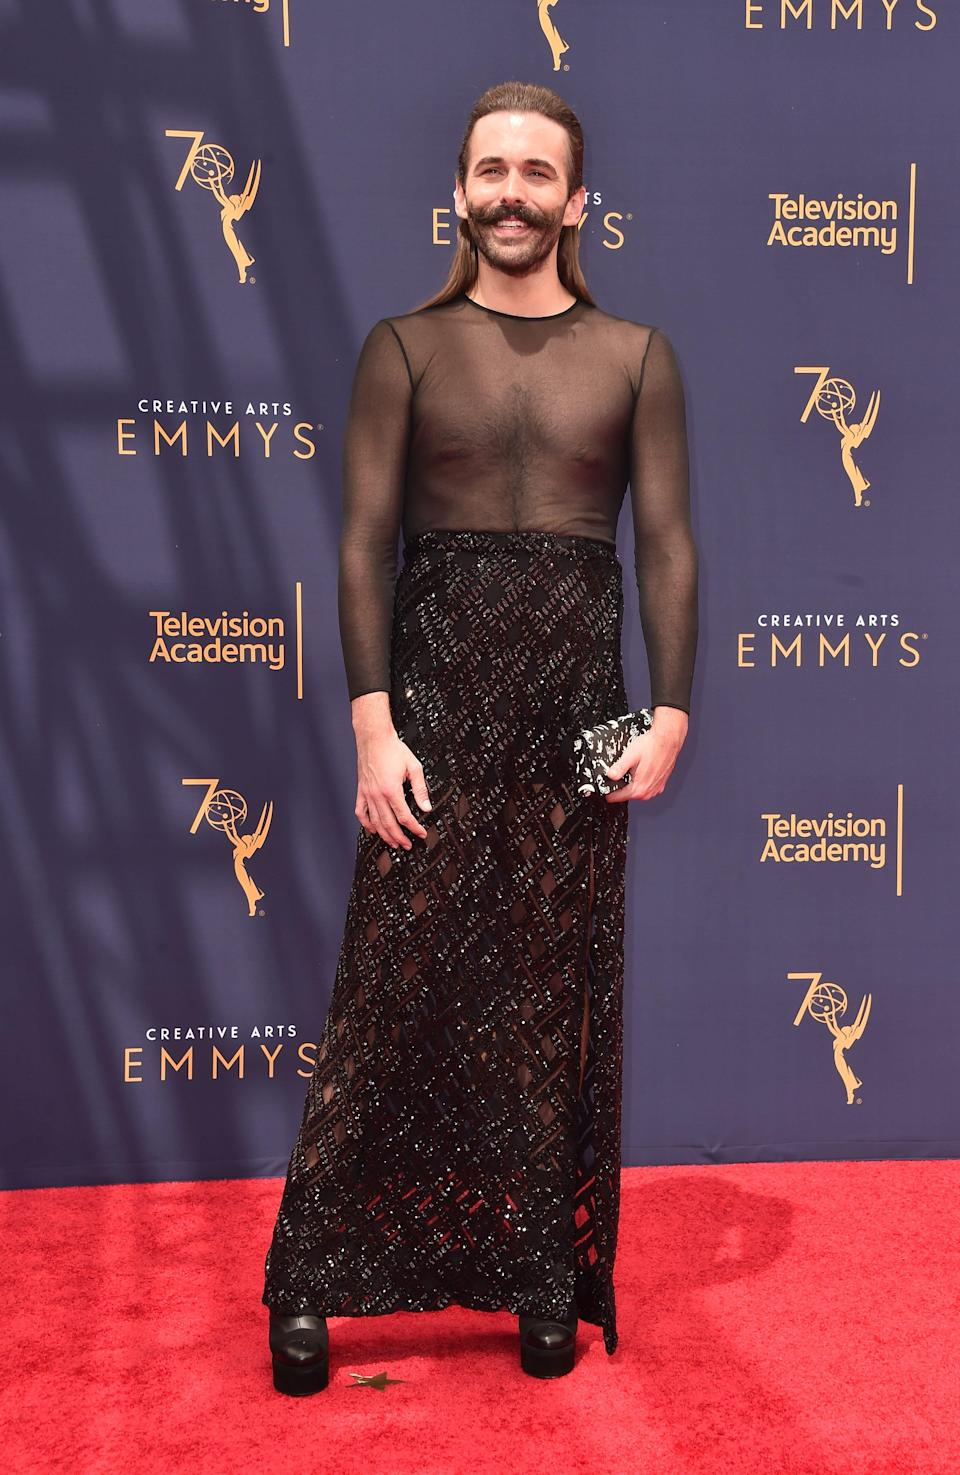 Jonathan Van Ness wears a dress with a sheer top at the Emmys in 2018.